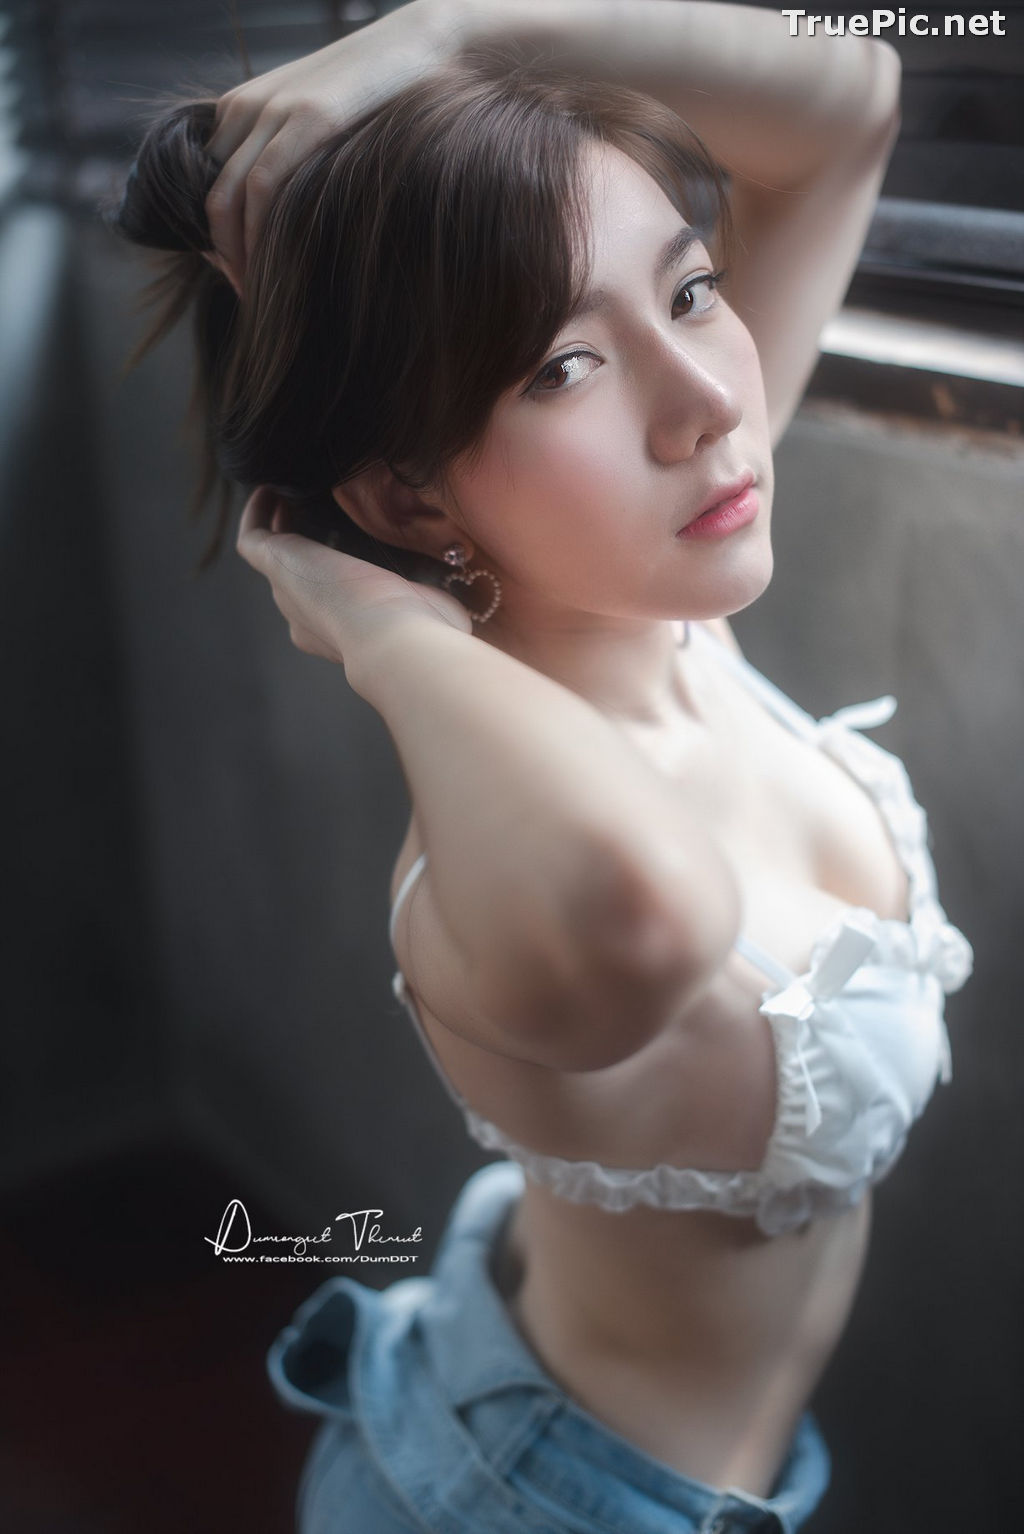 Image Thailand Model - Give Giift - Lovely and Sweet Angel - TruePic.net - Picture-10